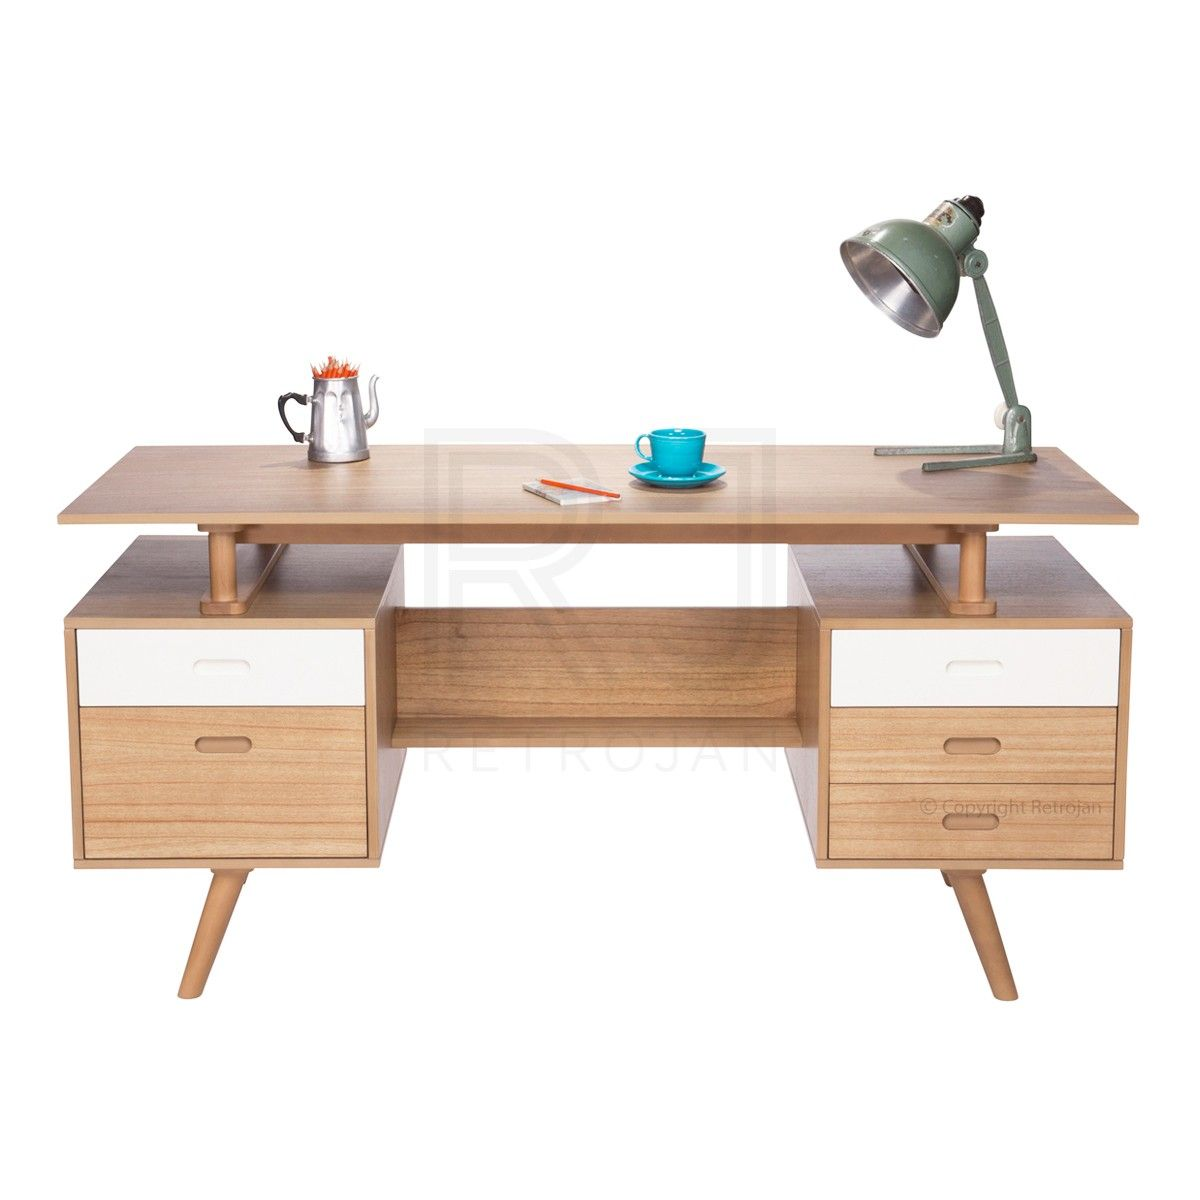 Scandinavian Style Desk josephine scandinavian style office desk - natural / white